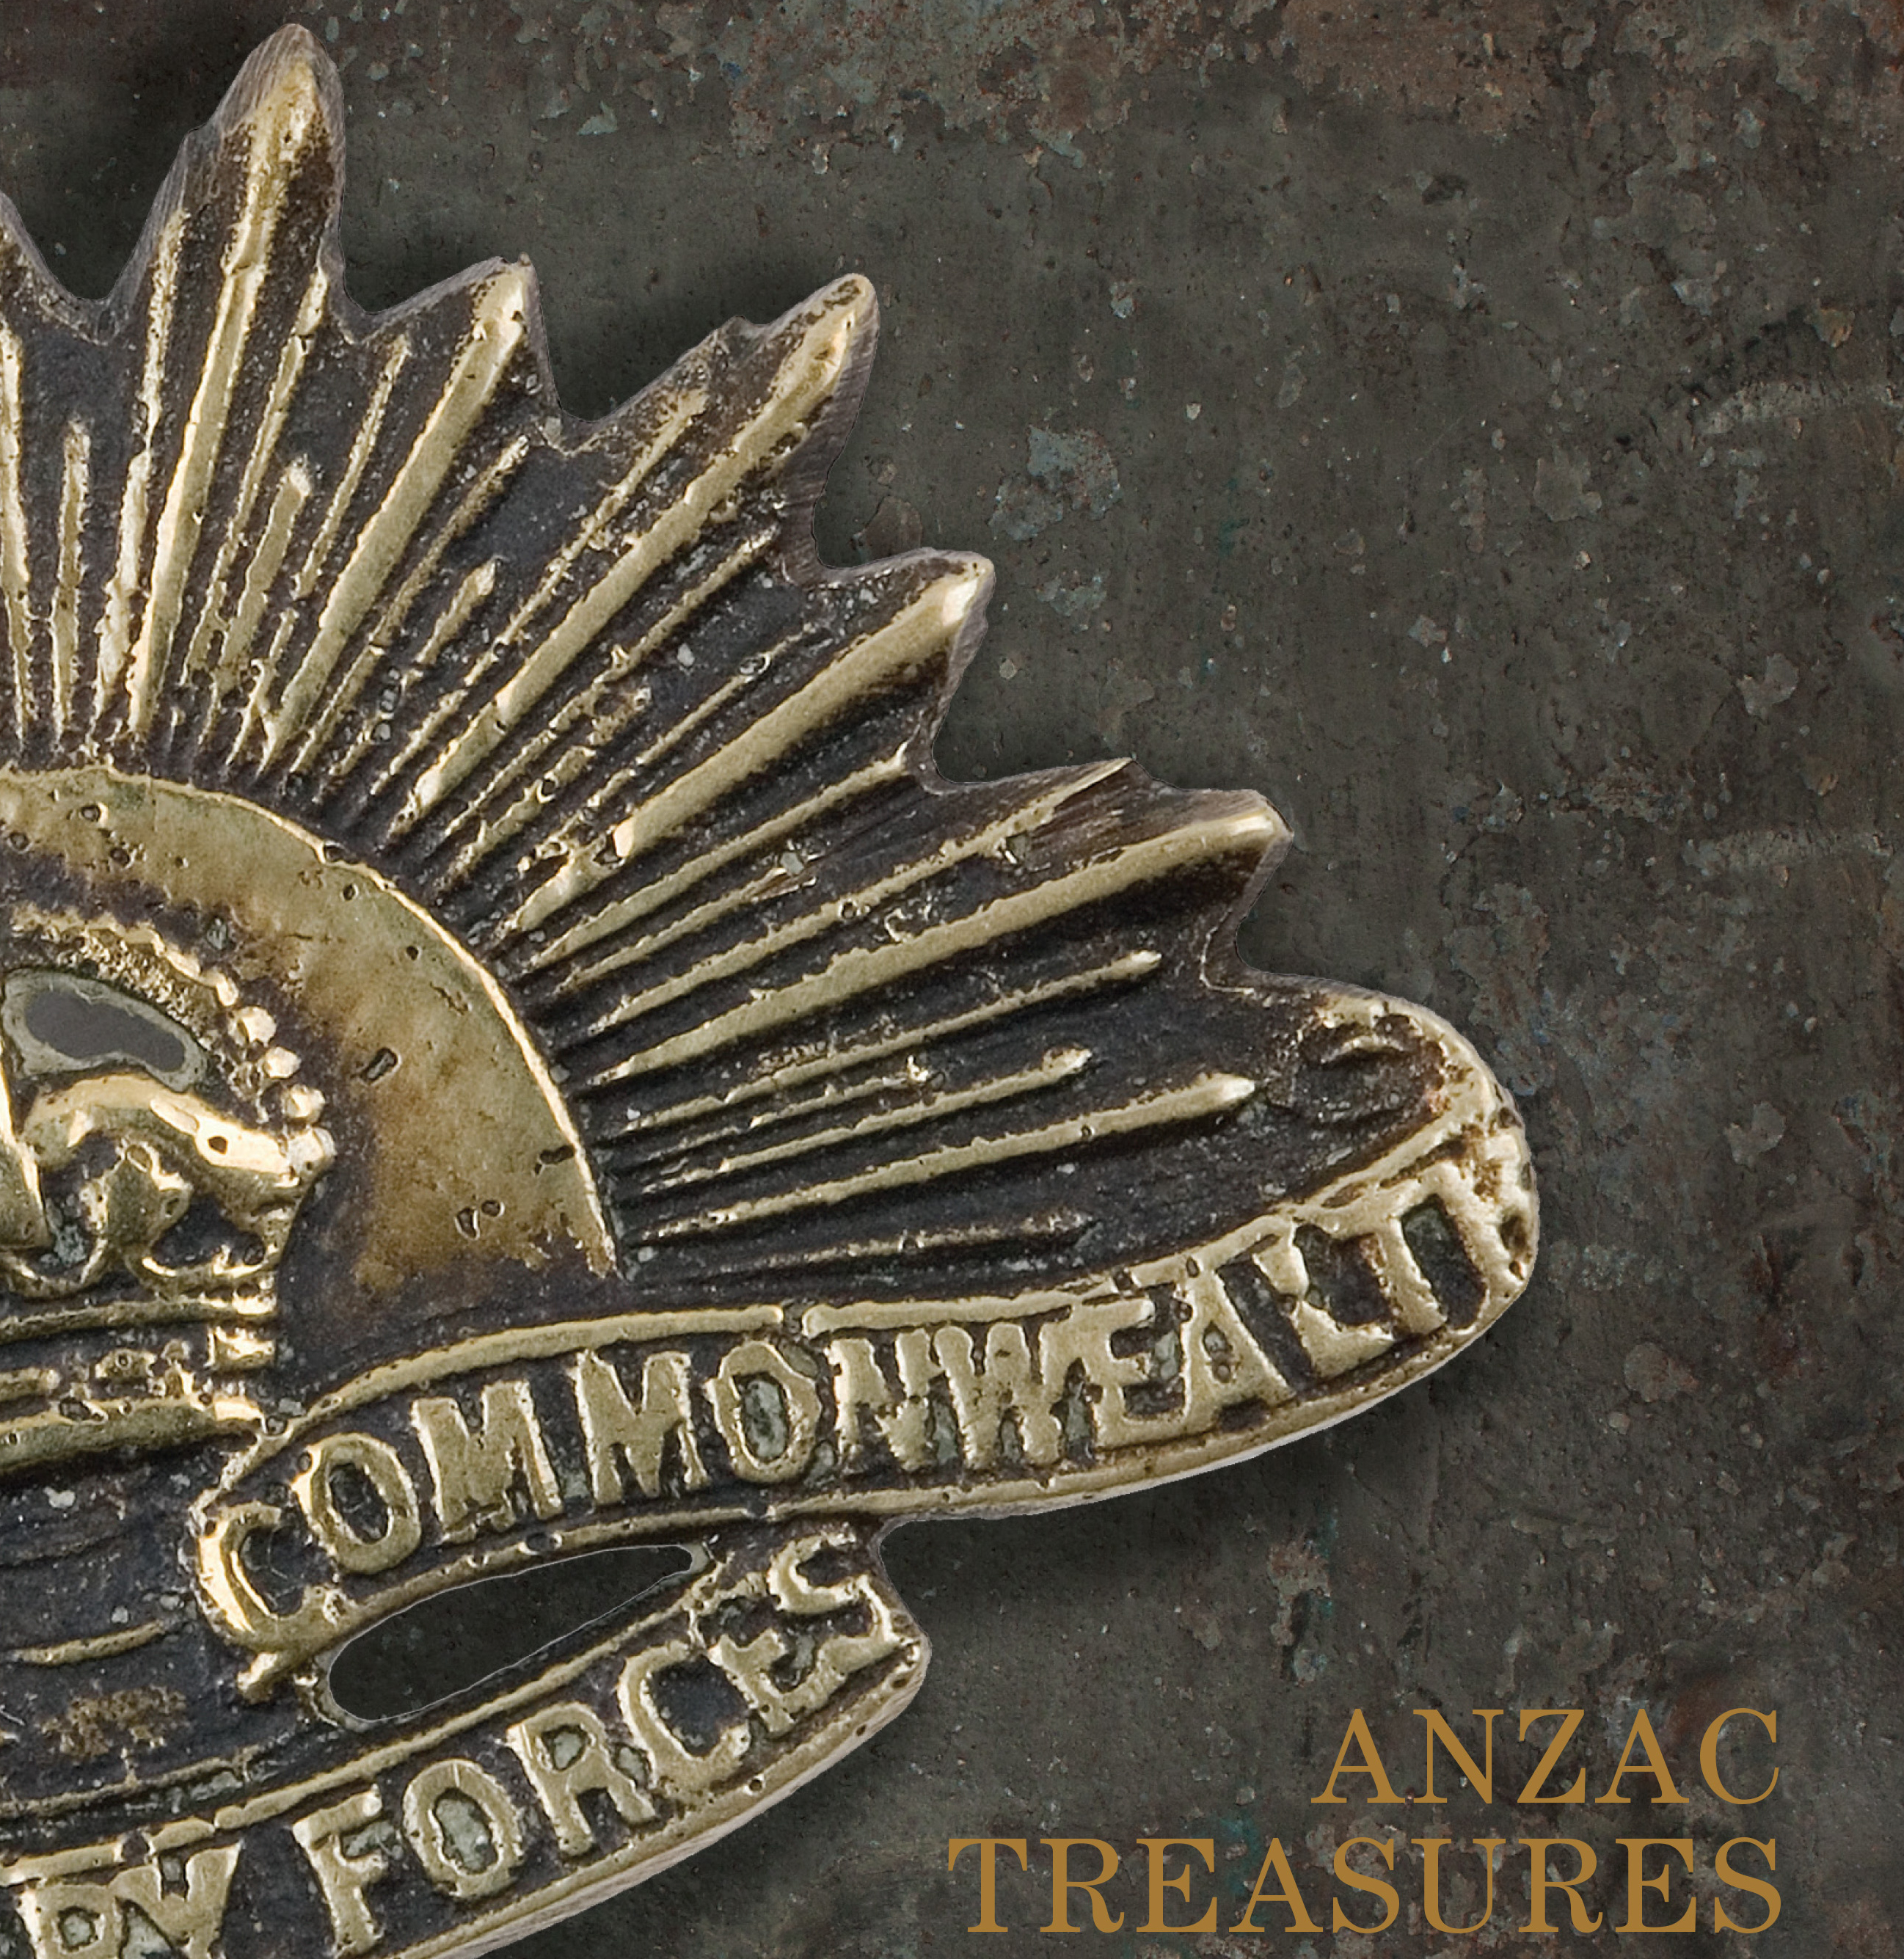 Anzac Treasures Gallipoli Collection of the Australian War Memorial